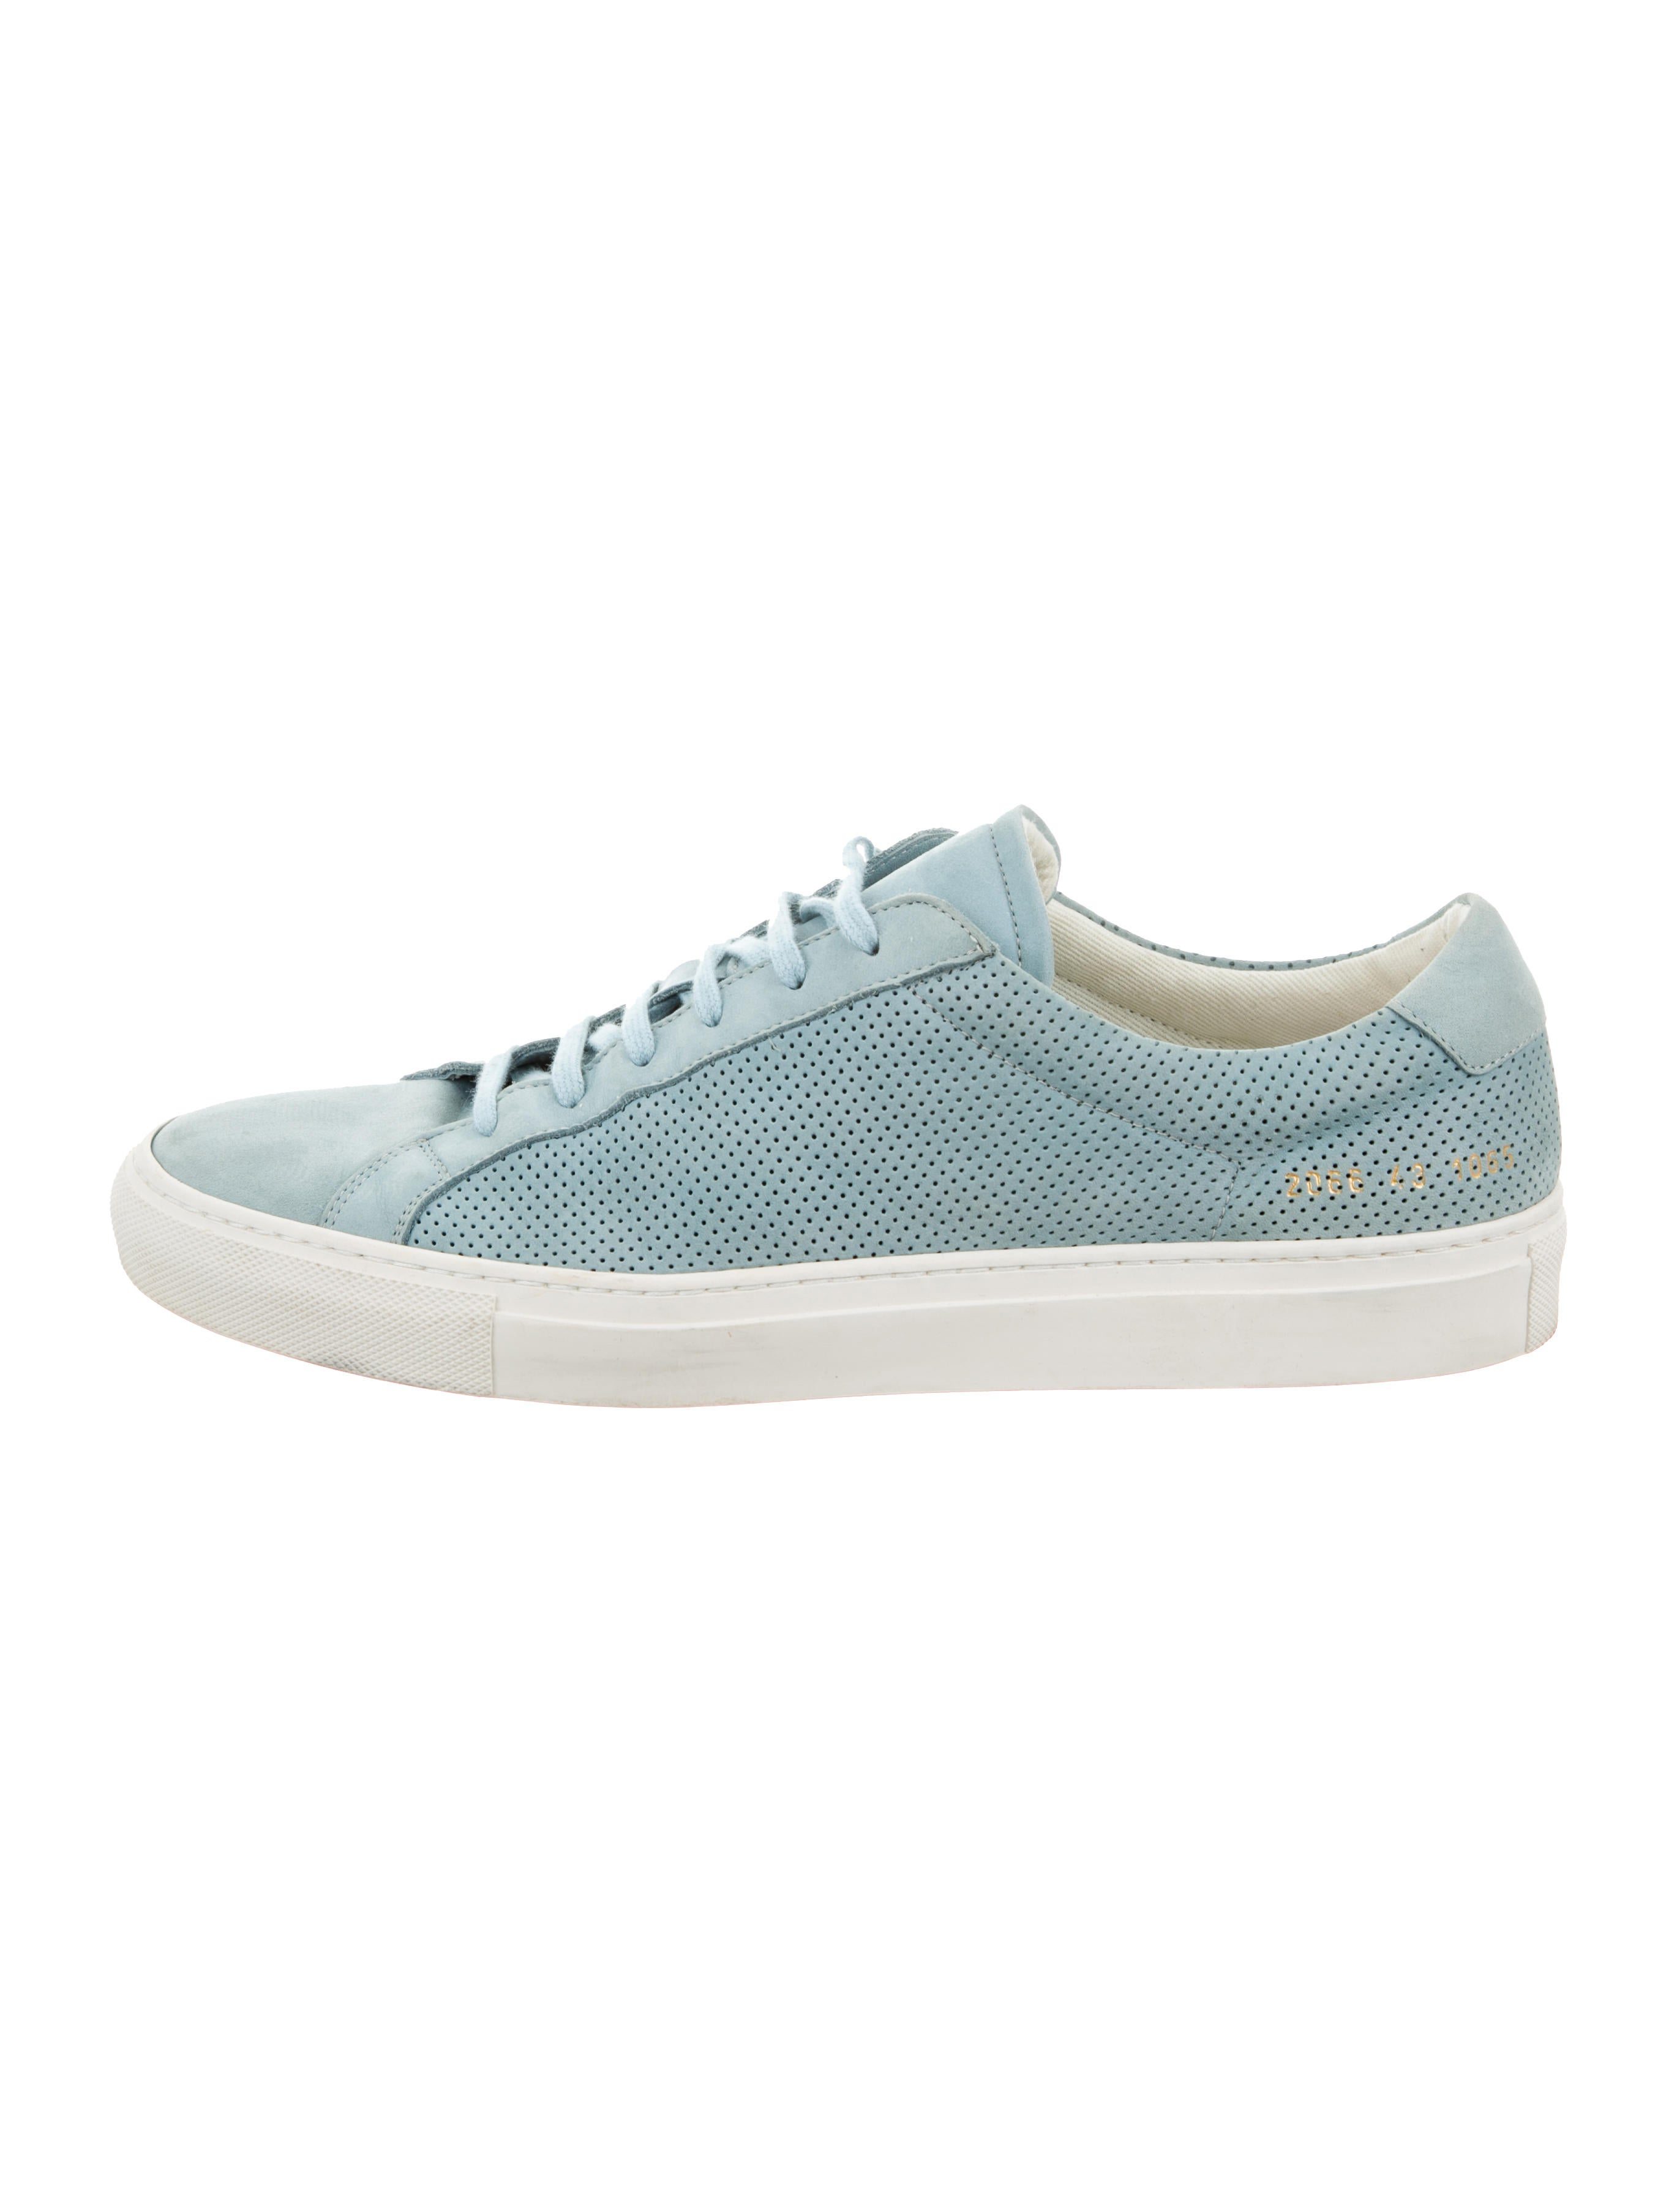 common projects shoes Discover stark minimalism in the selection of common projects running shoes find contemporary sneakers in high and low shapes online at farfetch.